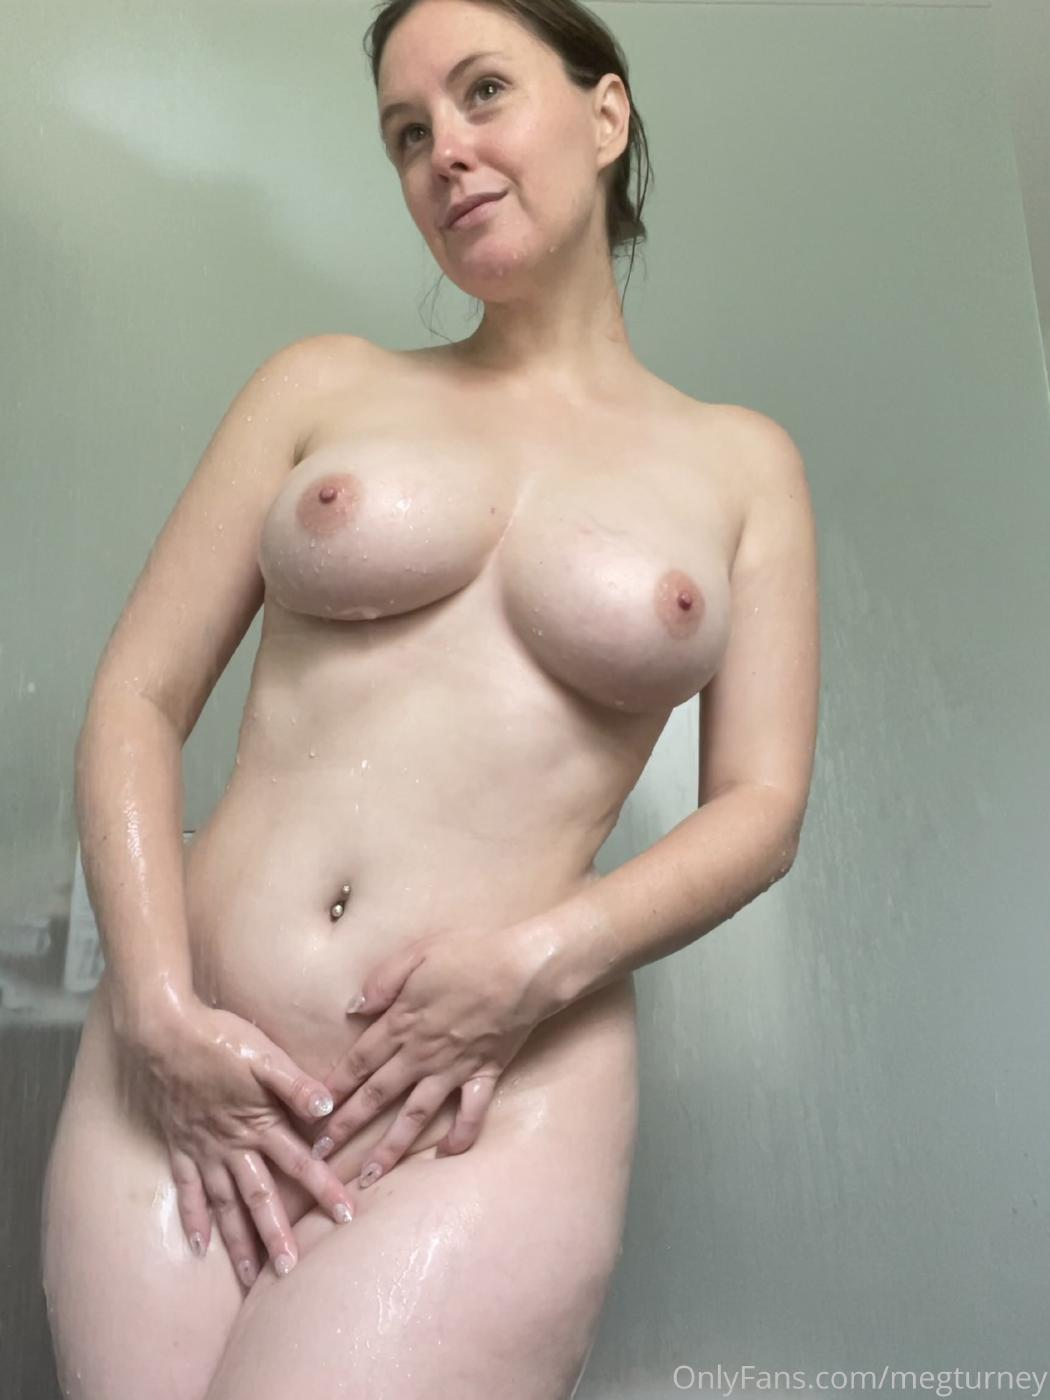 Meg Turney Extra Spicy Shower Candid Onlyfans Set Leaked 0006